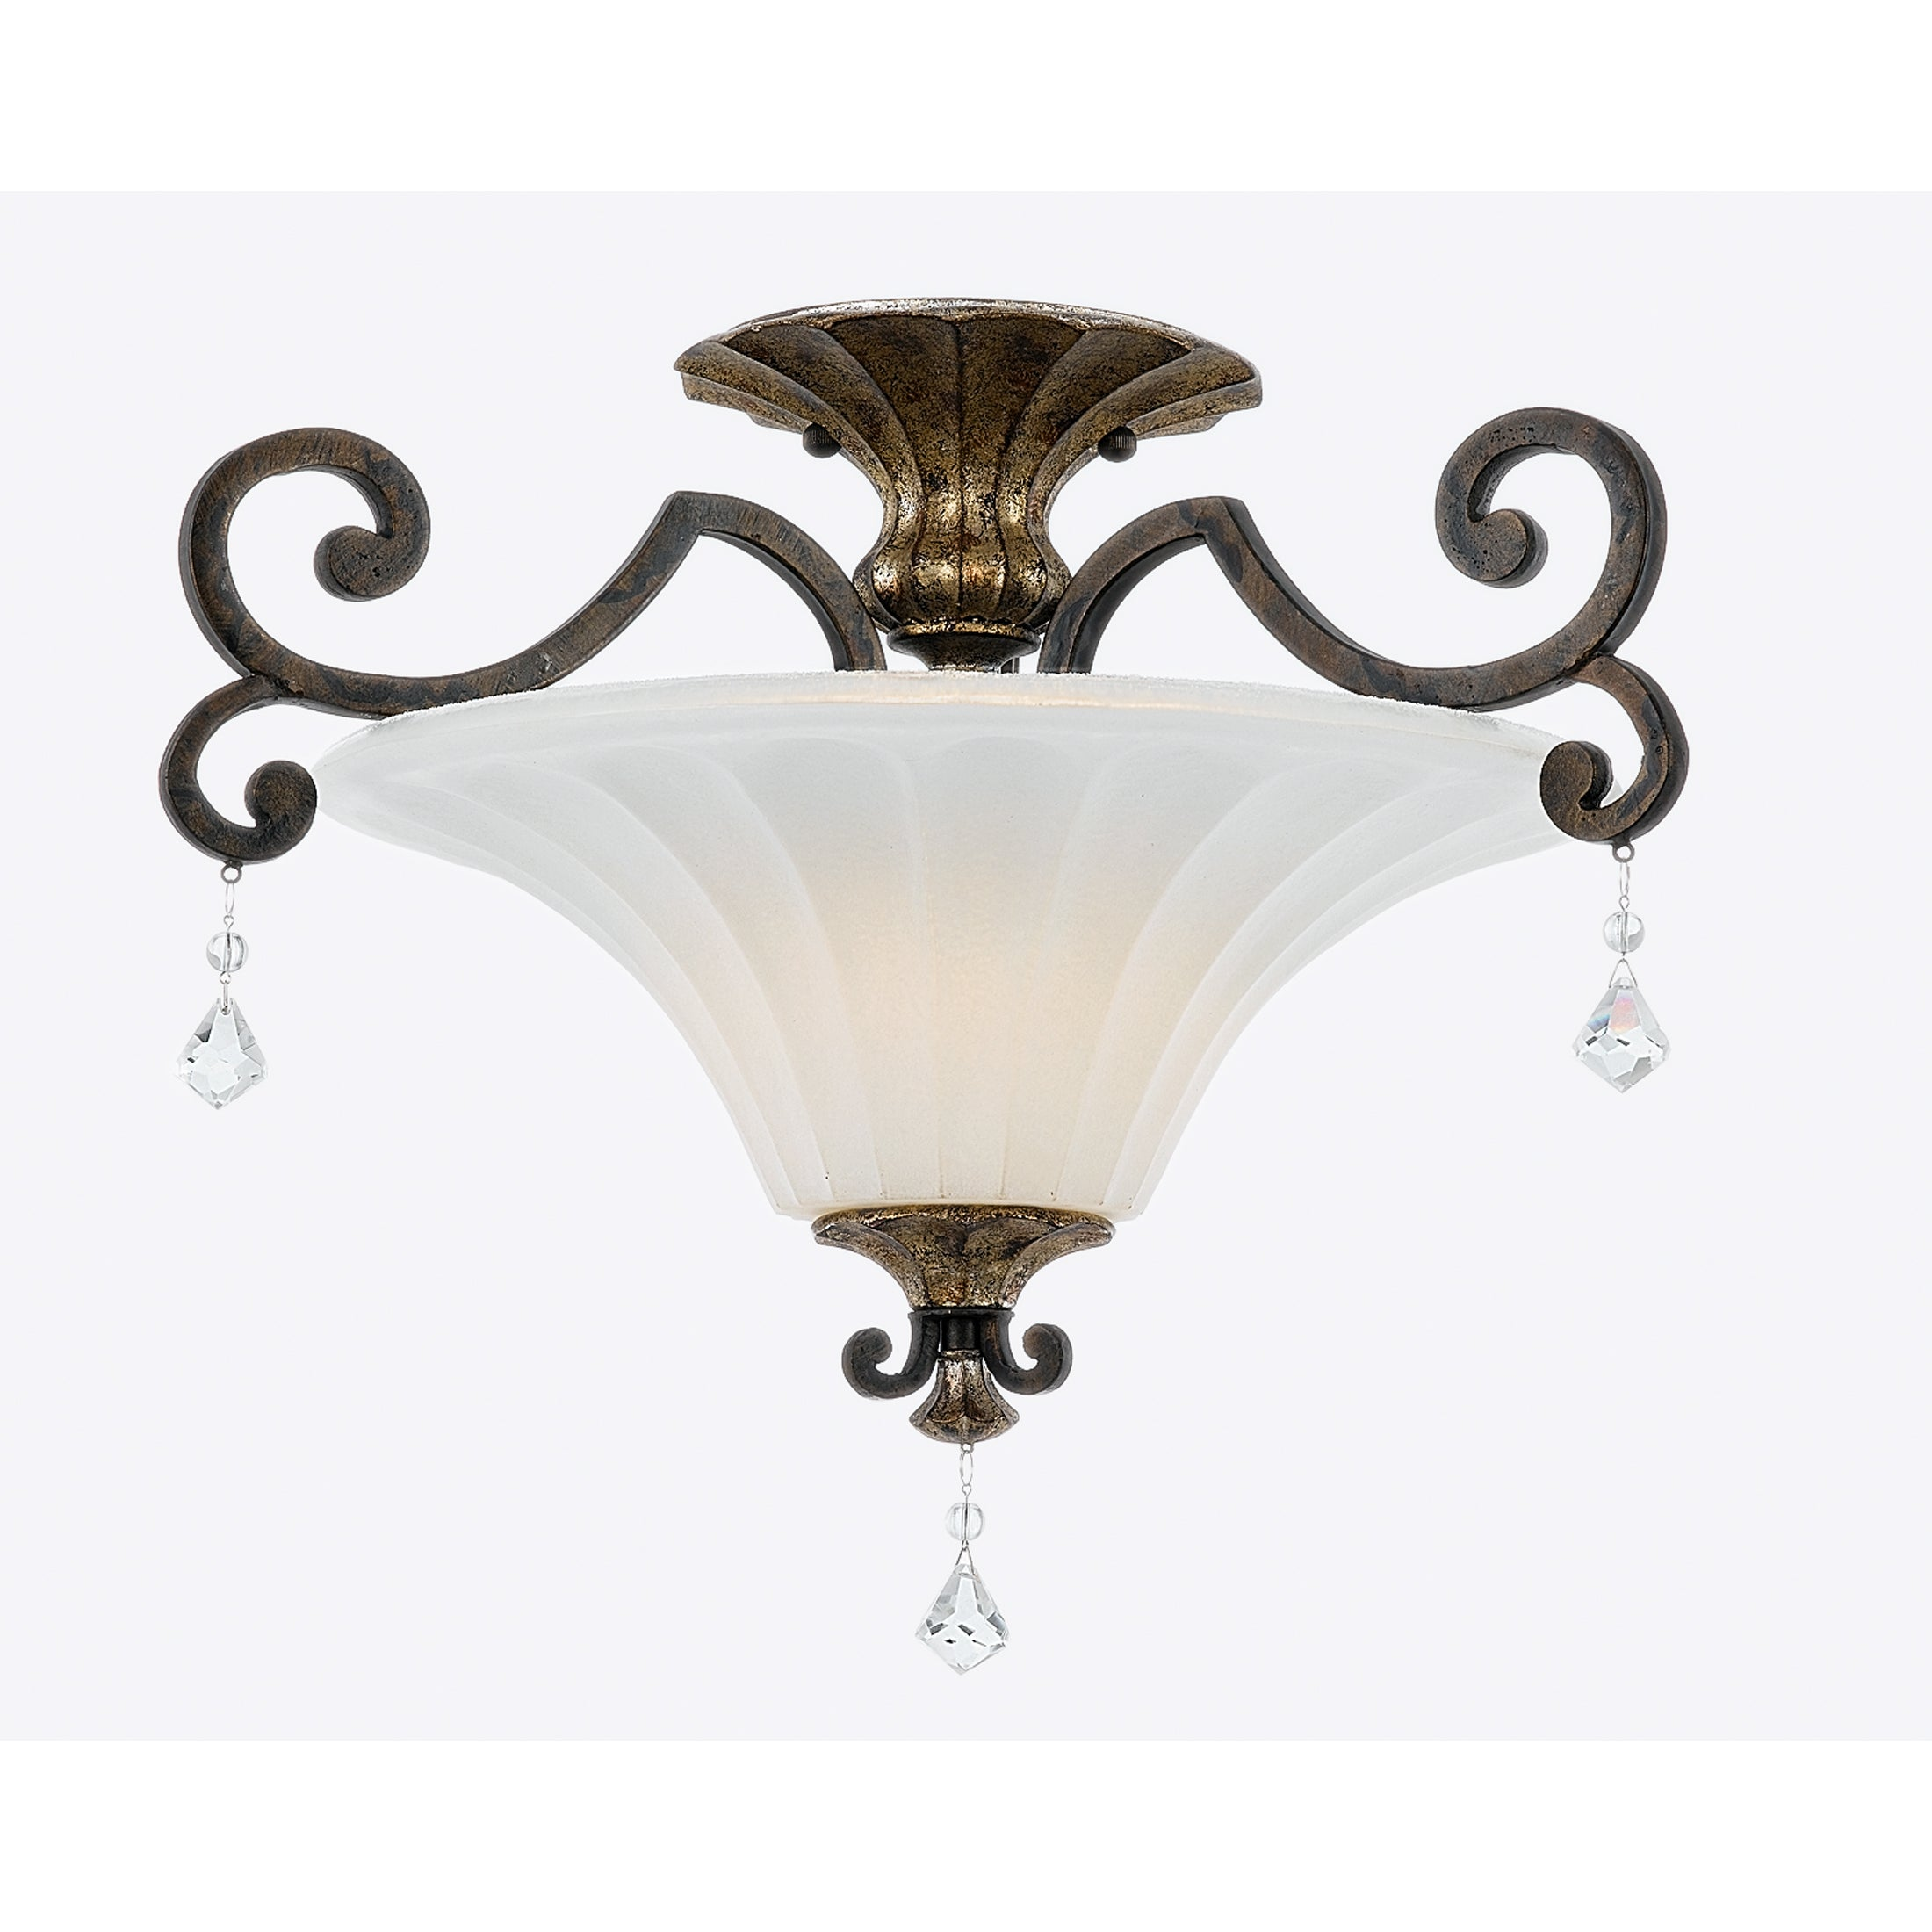 Quoizel 'Marquette' 2-light Semi-flush Mount